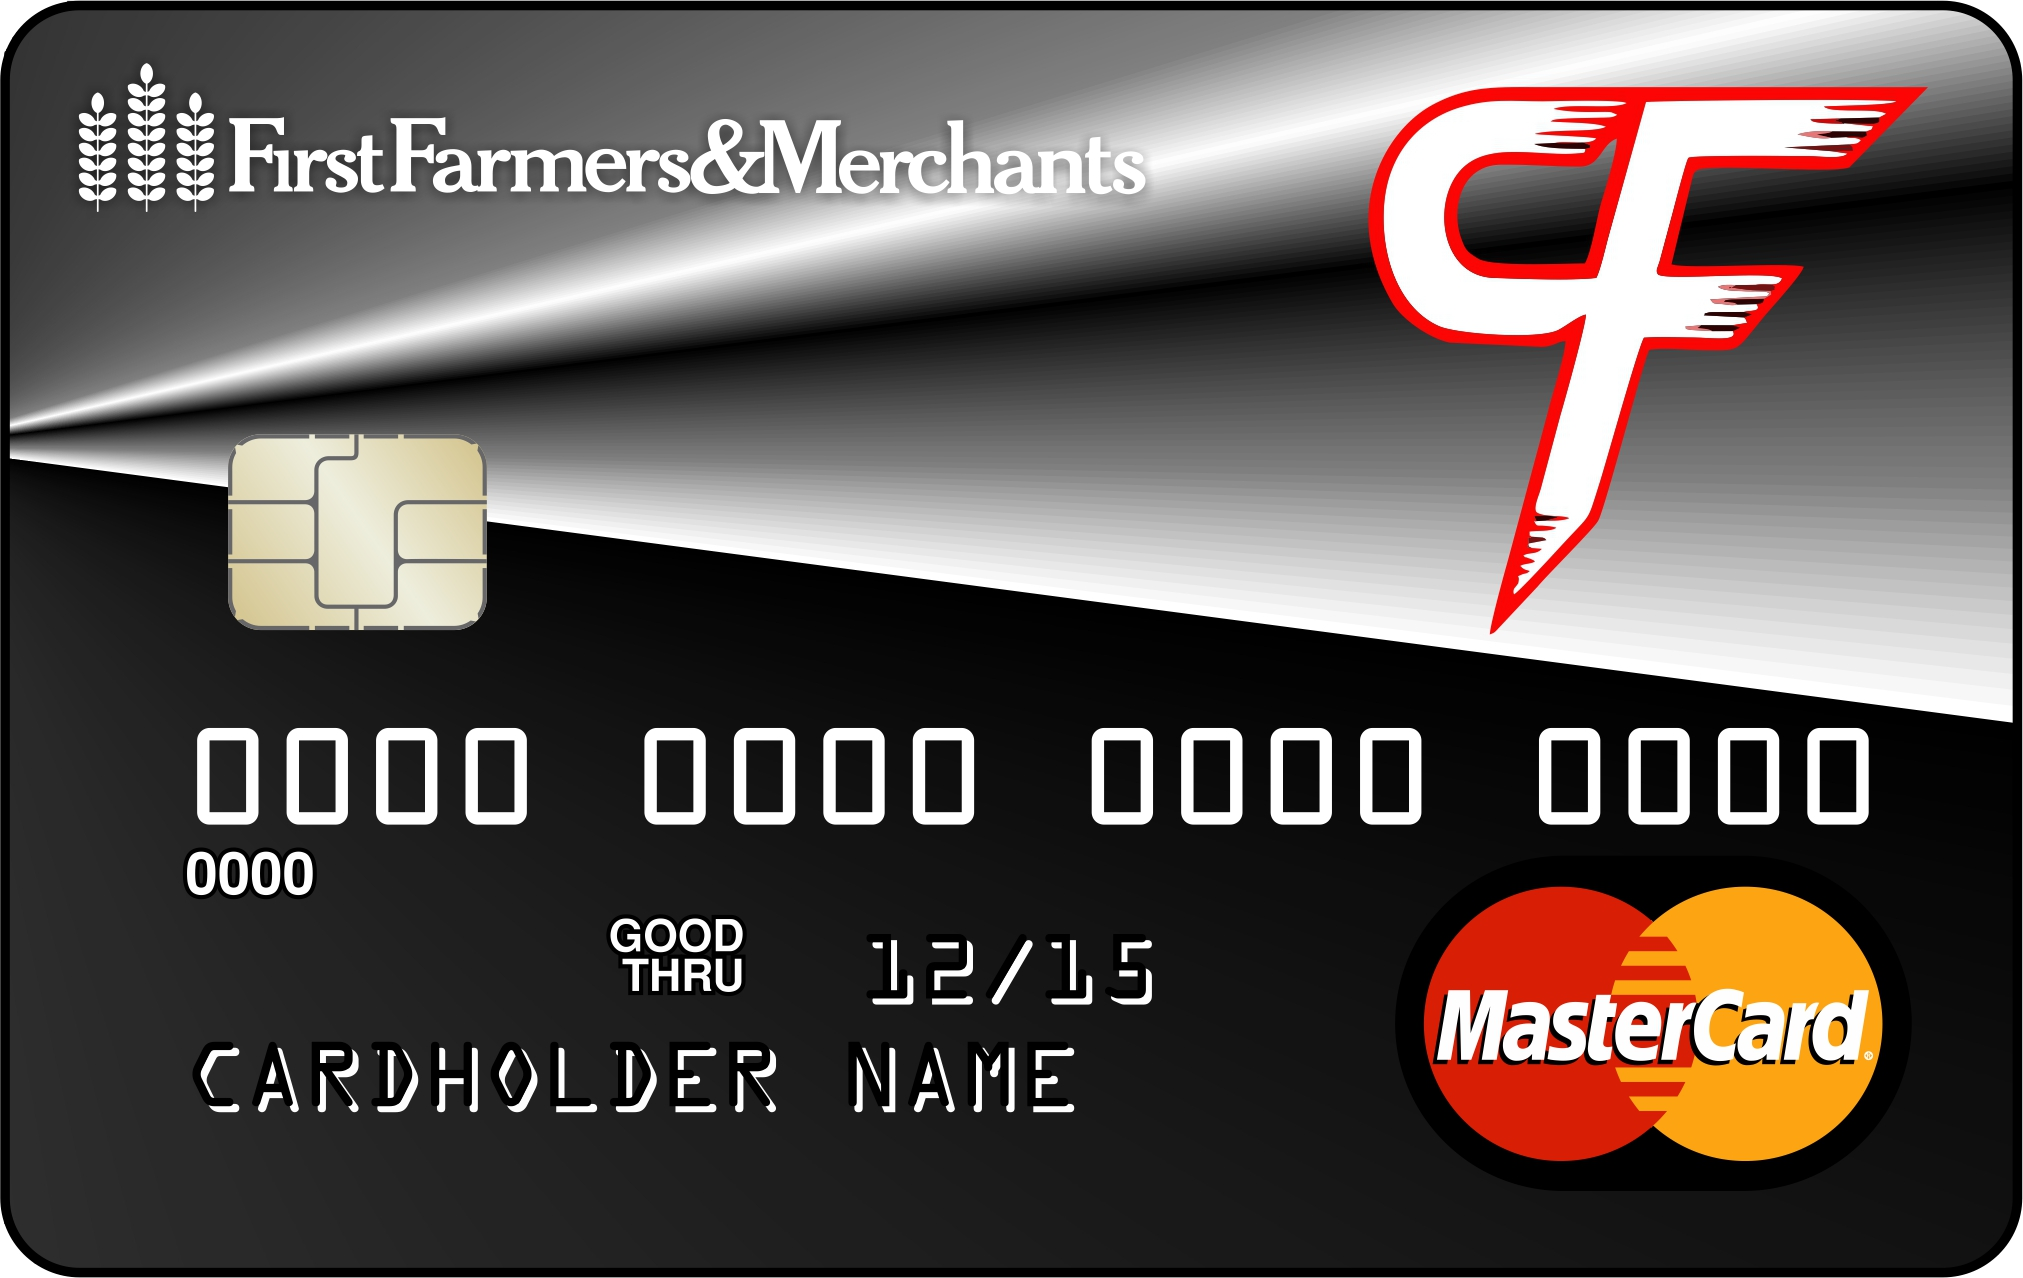 debit card with custom design of a CF on it